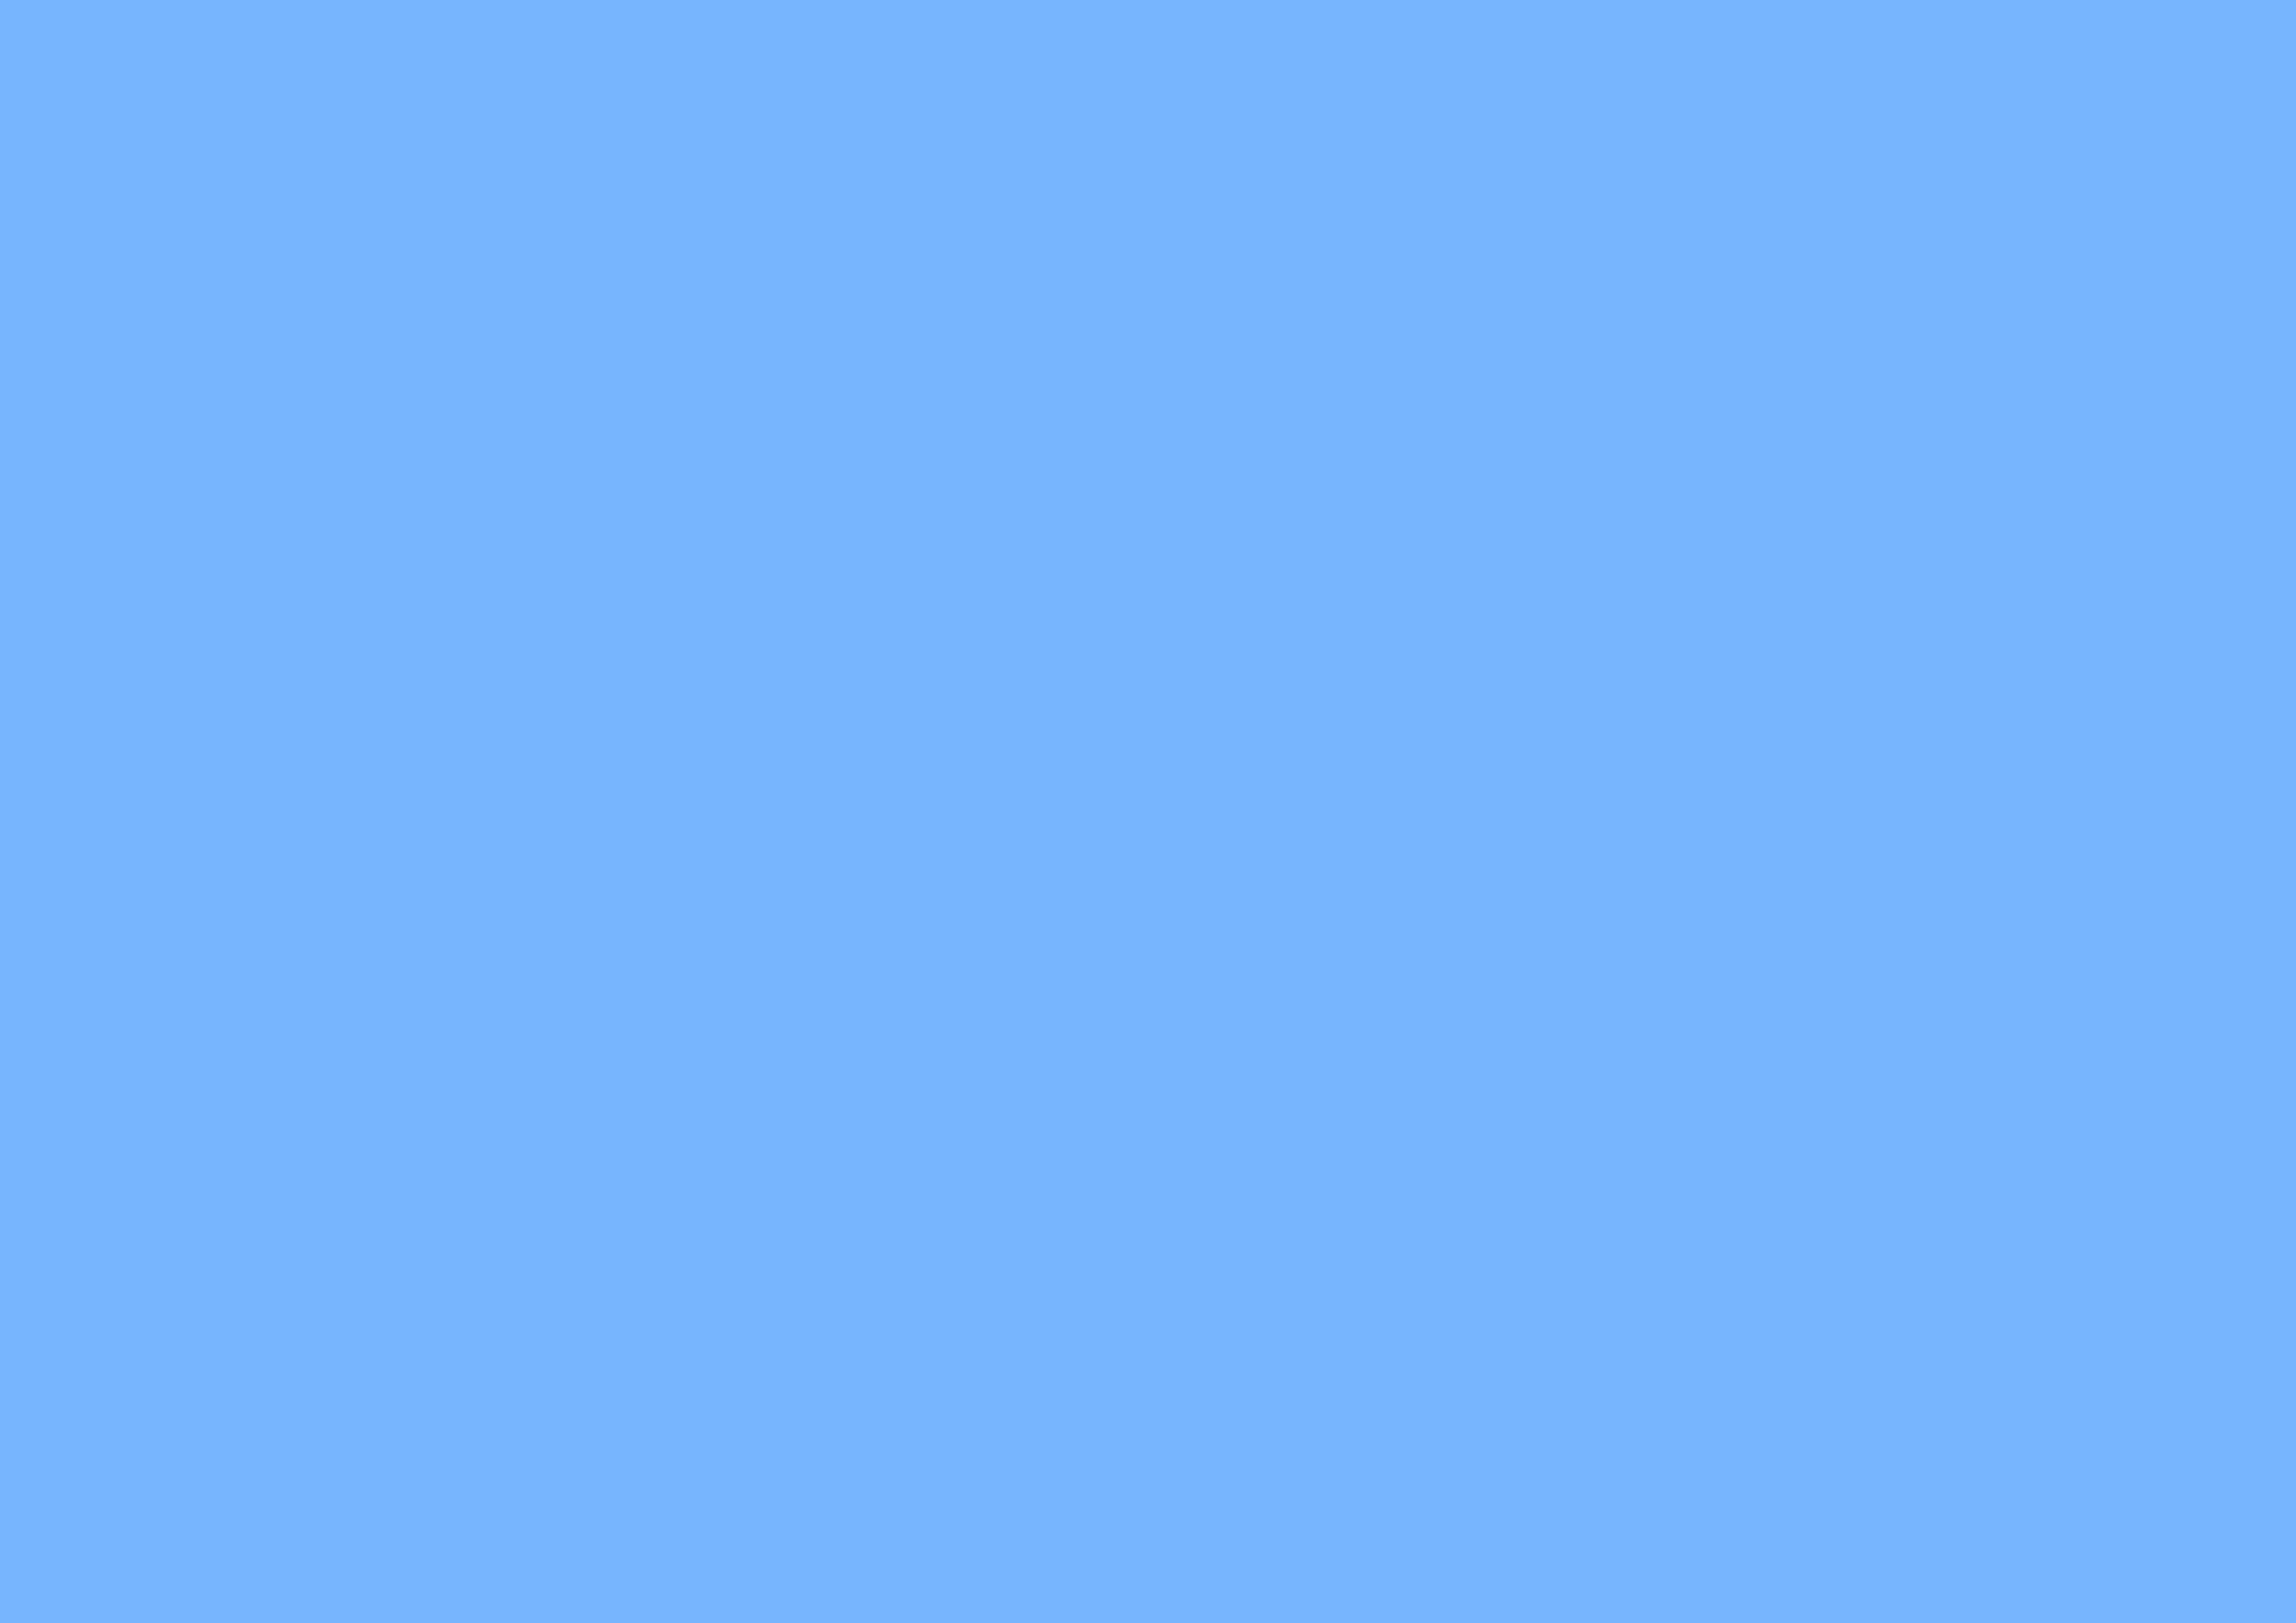 3508x2480 French Sky Blue Solid Color Background